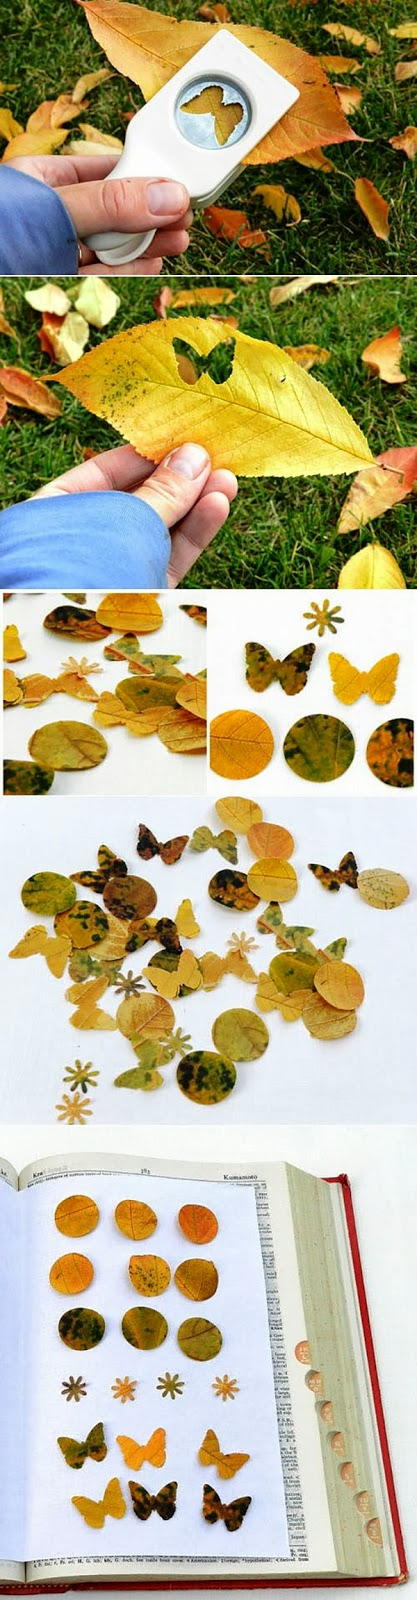 Craft Punched Leaves to create art for Autumn. I love these Martha Stewart Craft Punches, as long as the edges are kept sharp, they can cut through strong Fall leaves that would be excellent for creating a little mini art journal or scrapbook for kids.